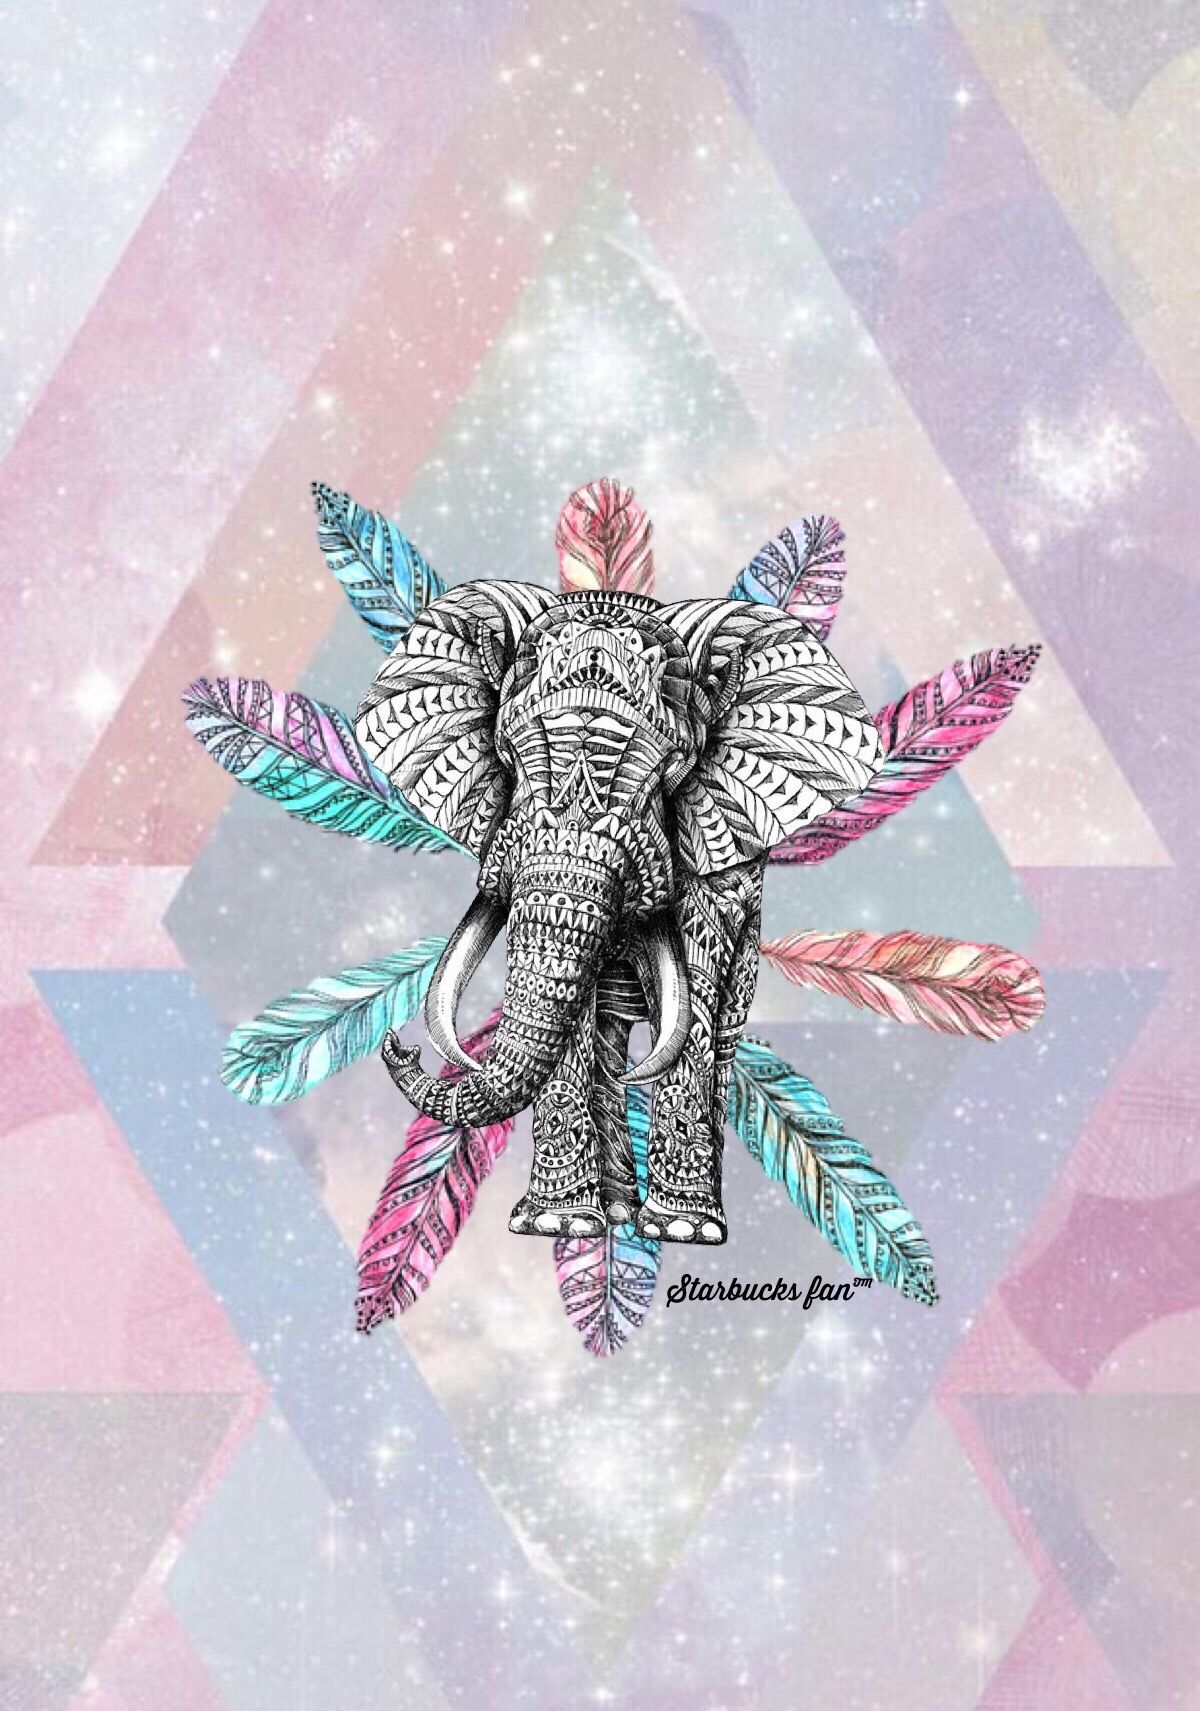 Wallpaper iphone love in 2019 elephant wallpaper - Elephant background iphone ...